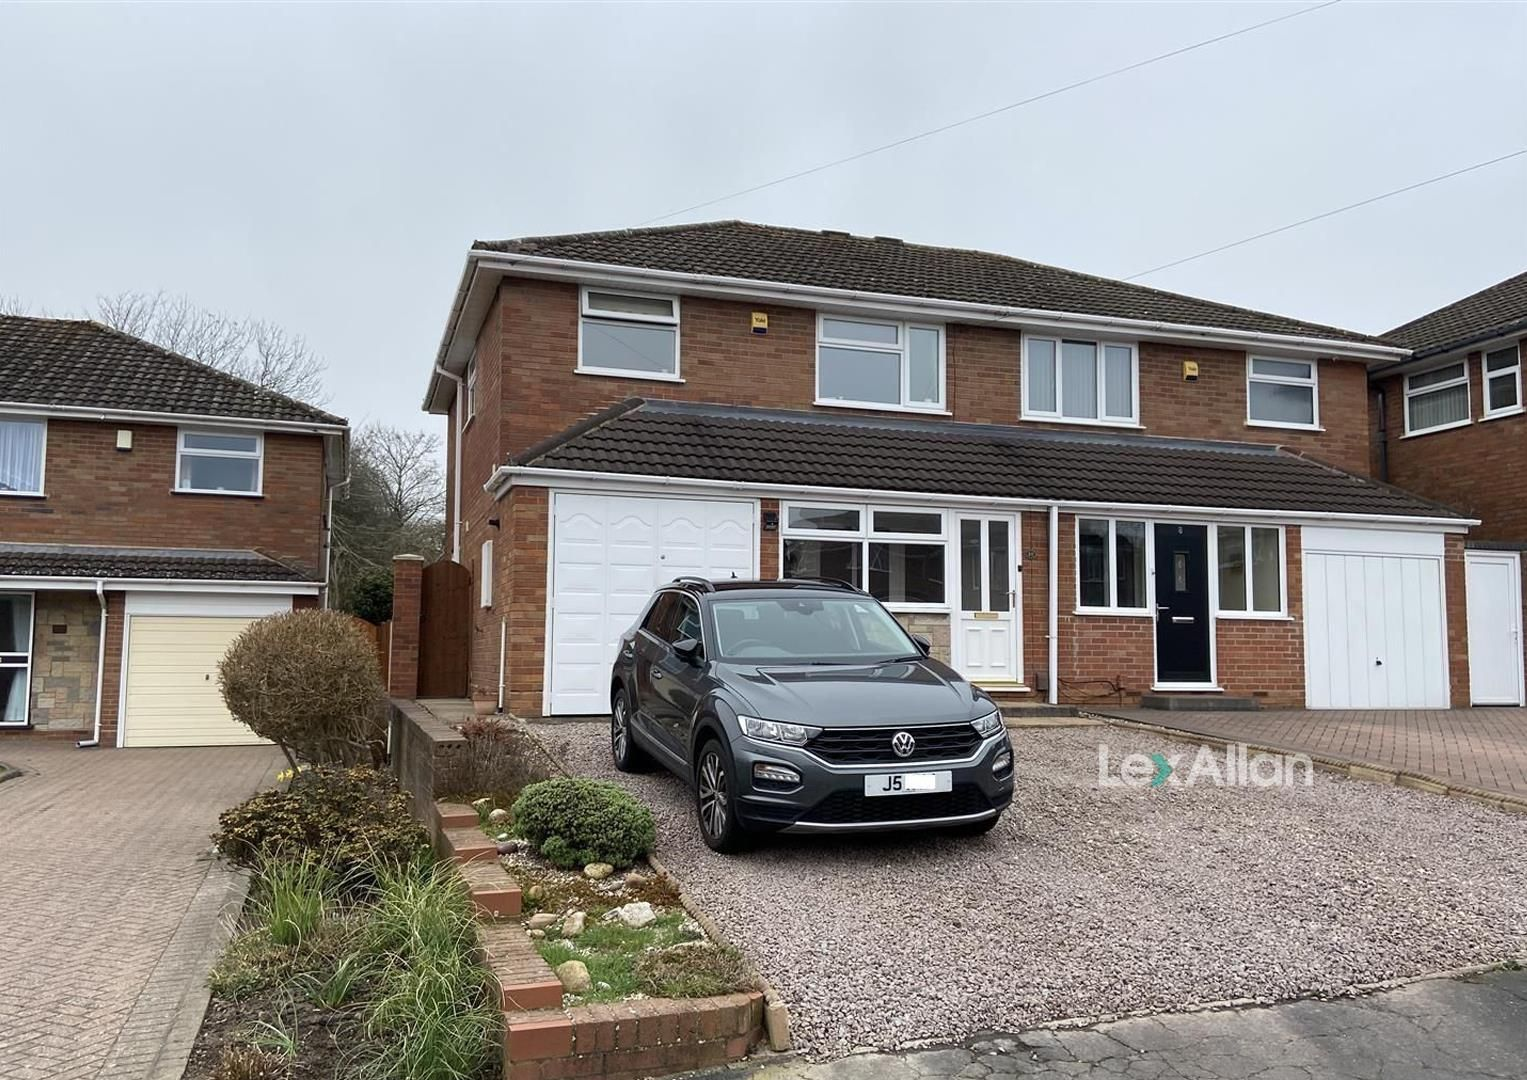 3 bed semi-detached for sale, DY5